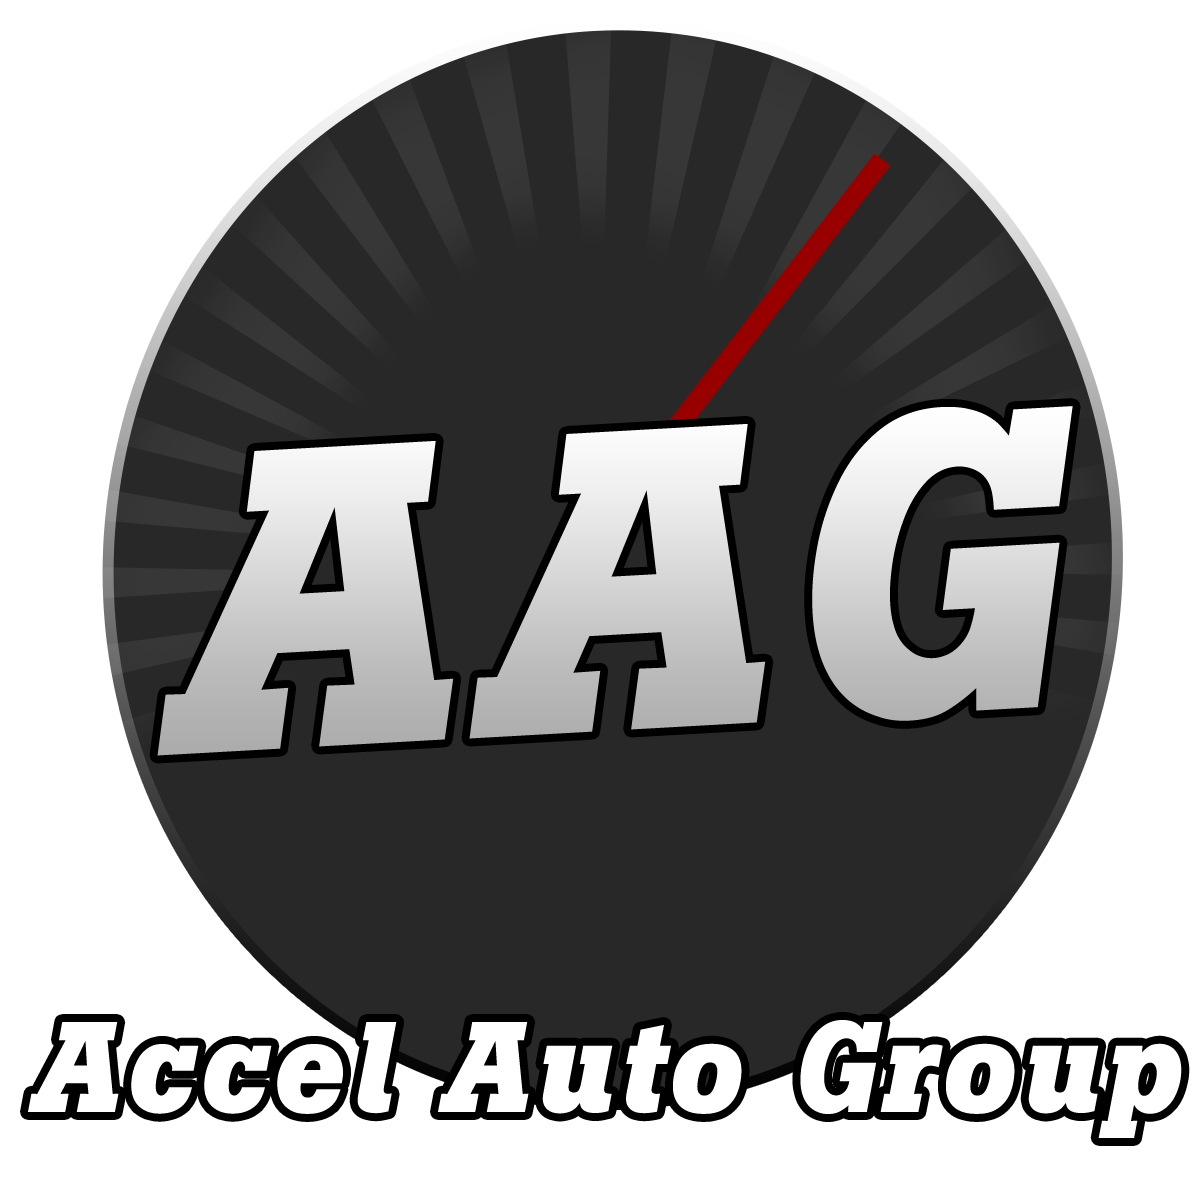 Accel Auto Group